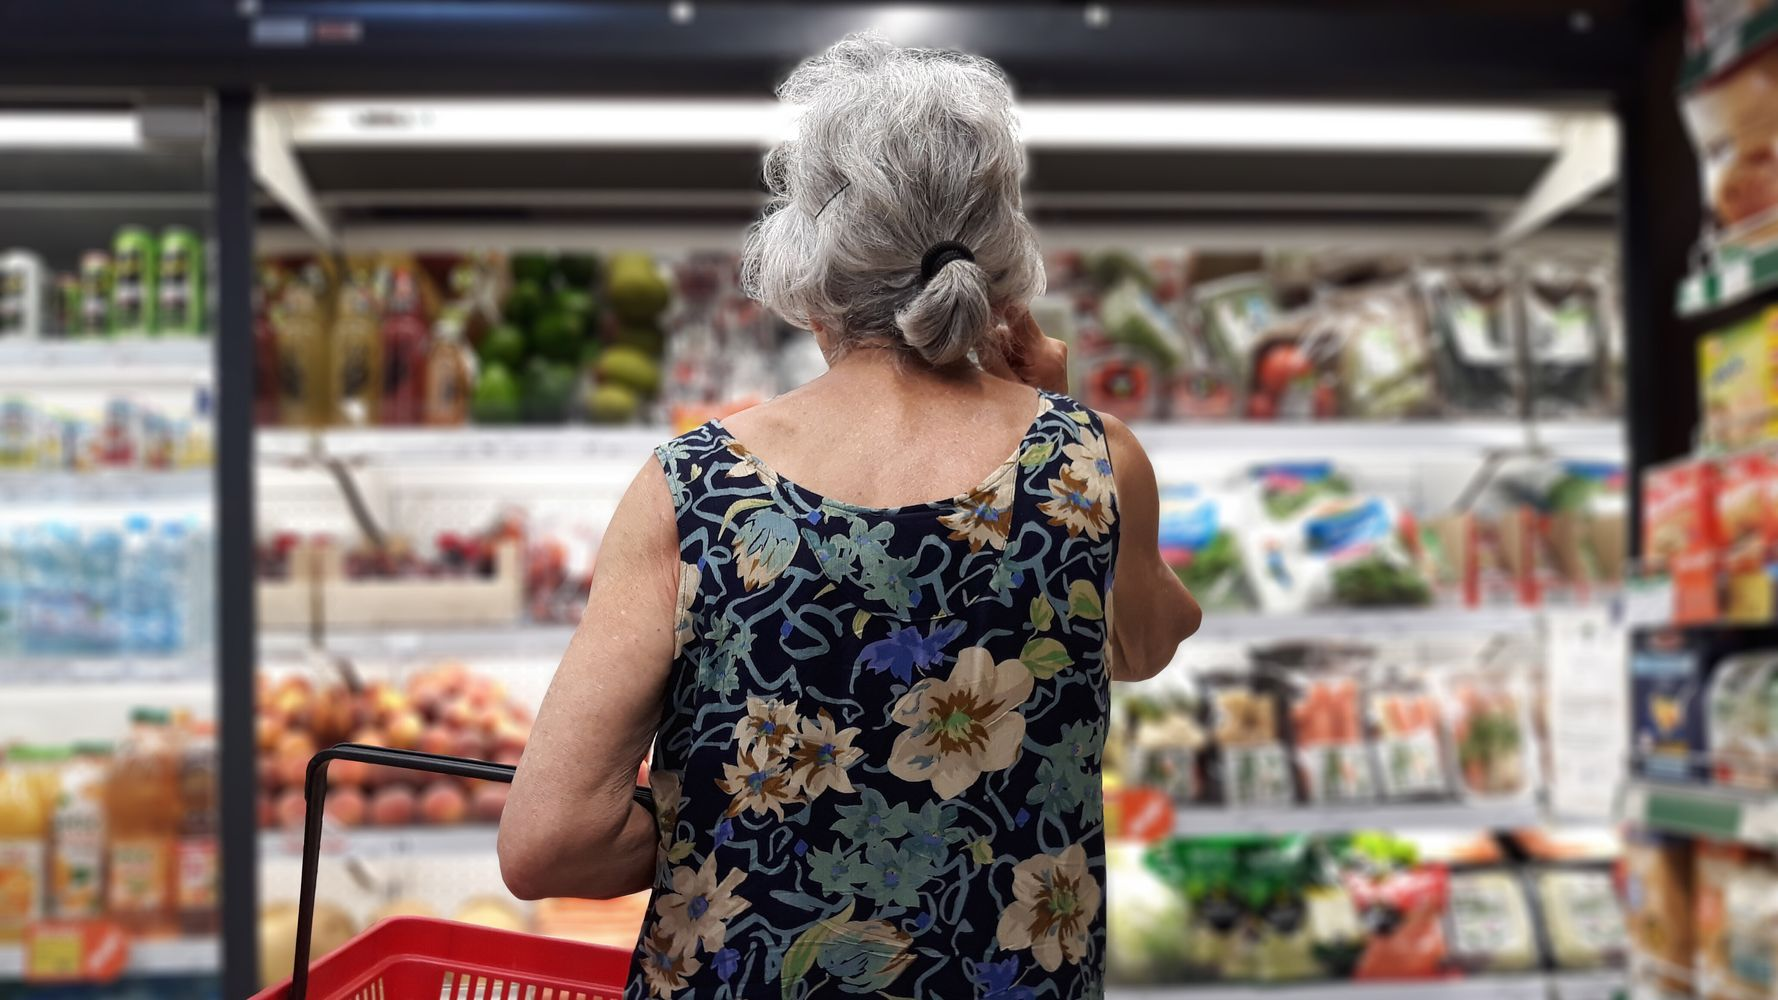 Is It Safe For Older People To Shop During Senior Hours At